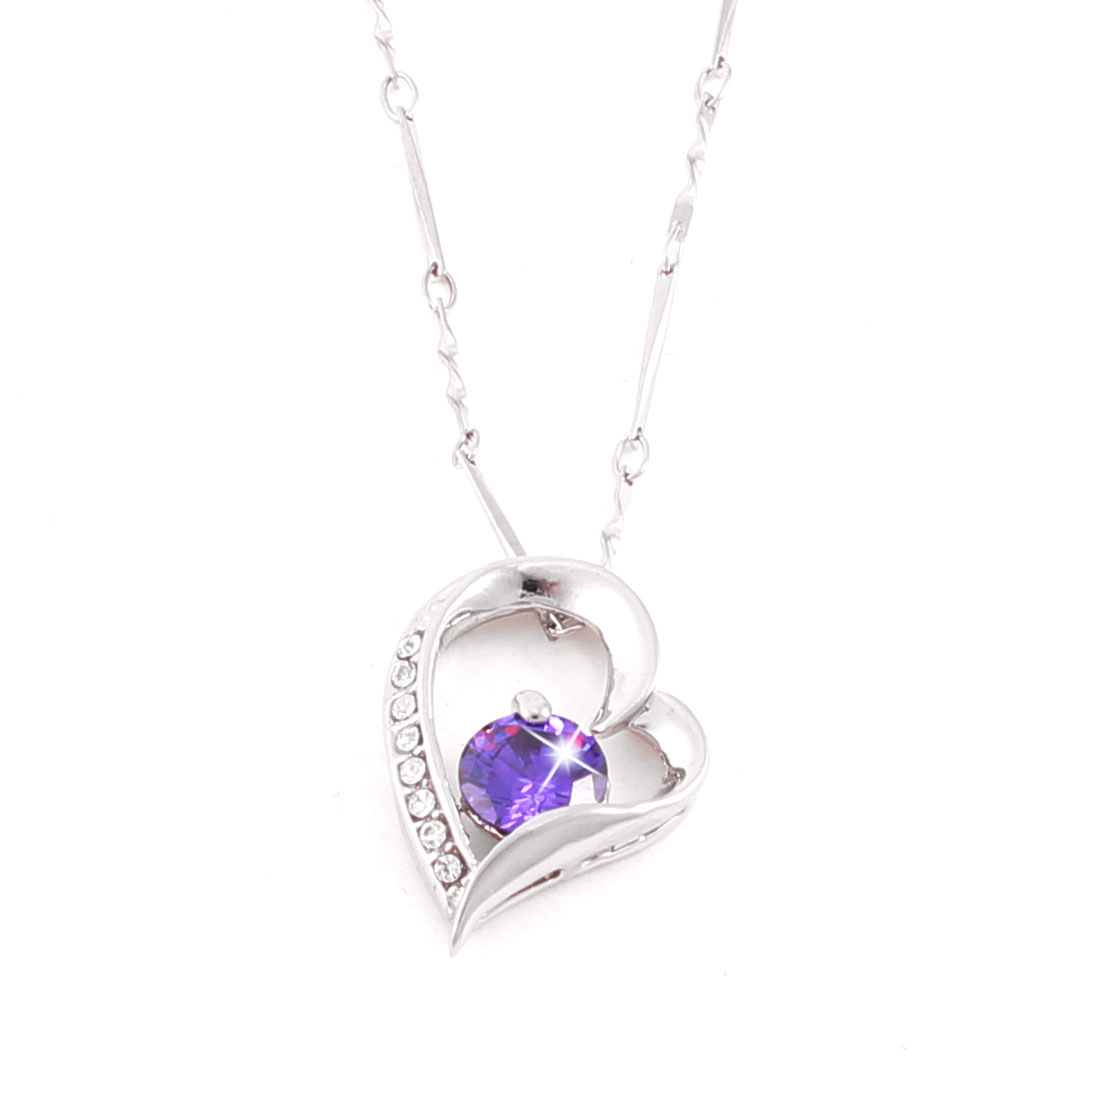 Spring Closure Metal Chain Heart Design Necklace Silver Tone Purple for Lady